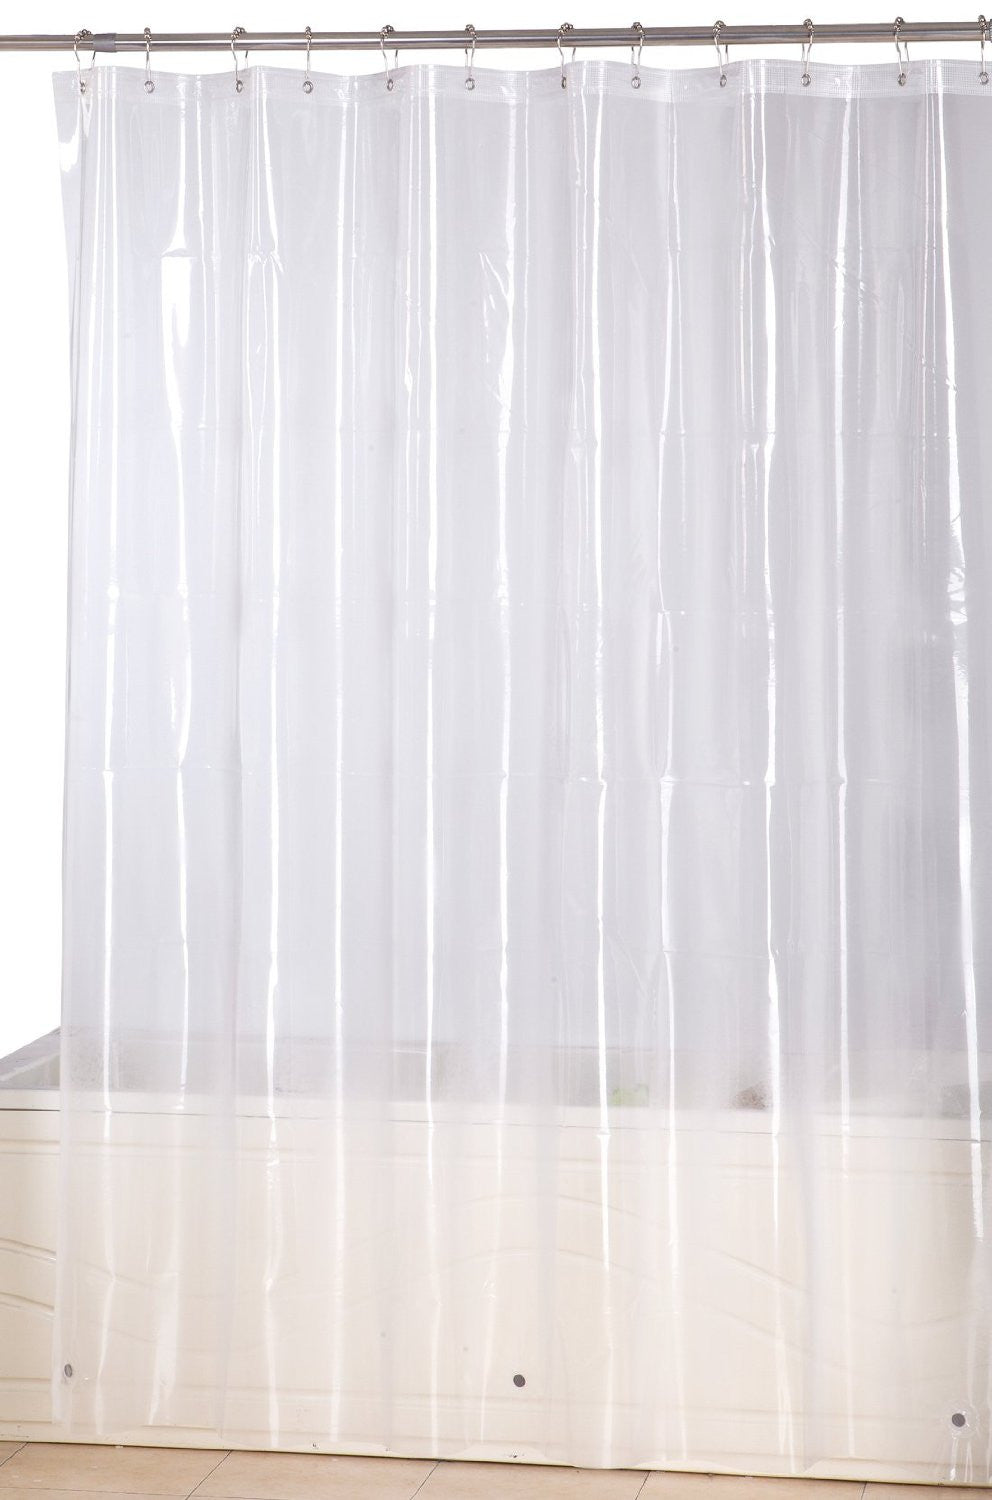 Shower Curtain 72 by 72 inch - Clear